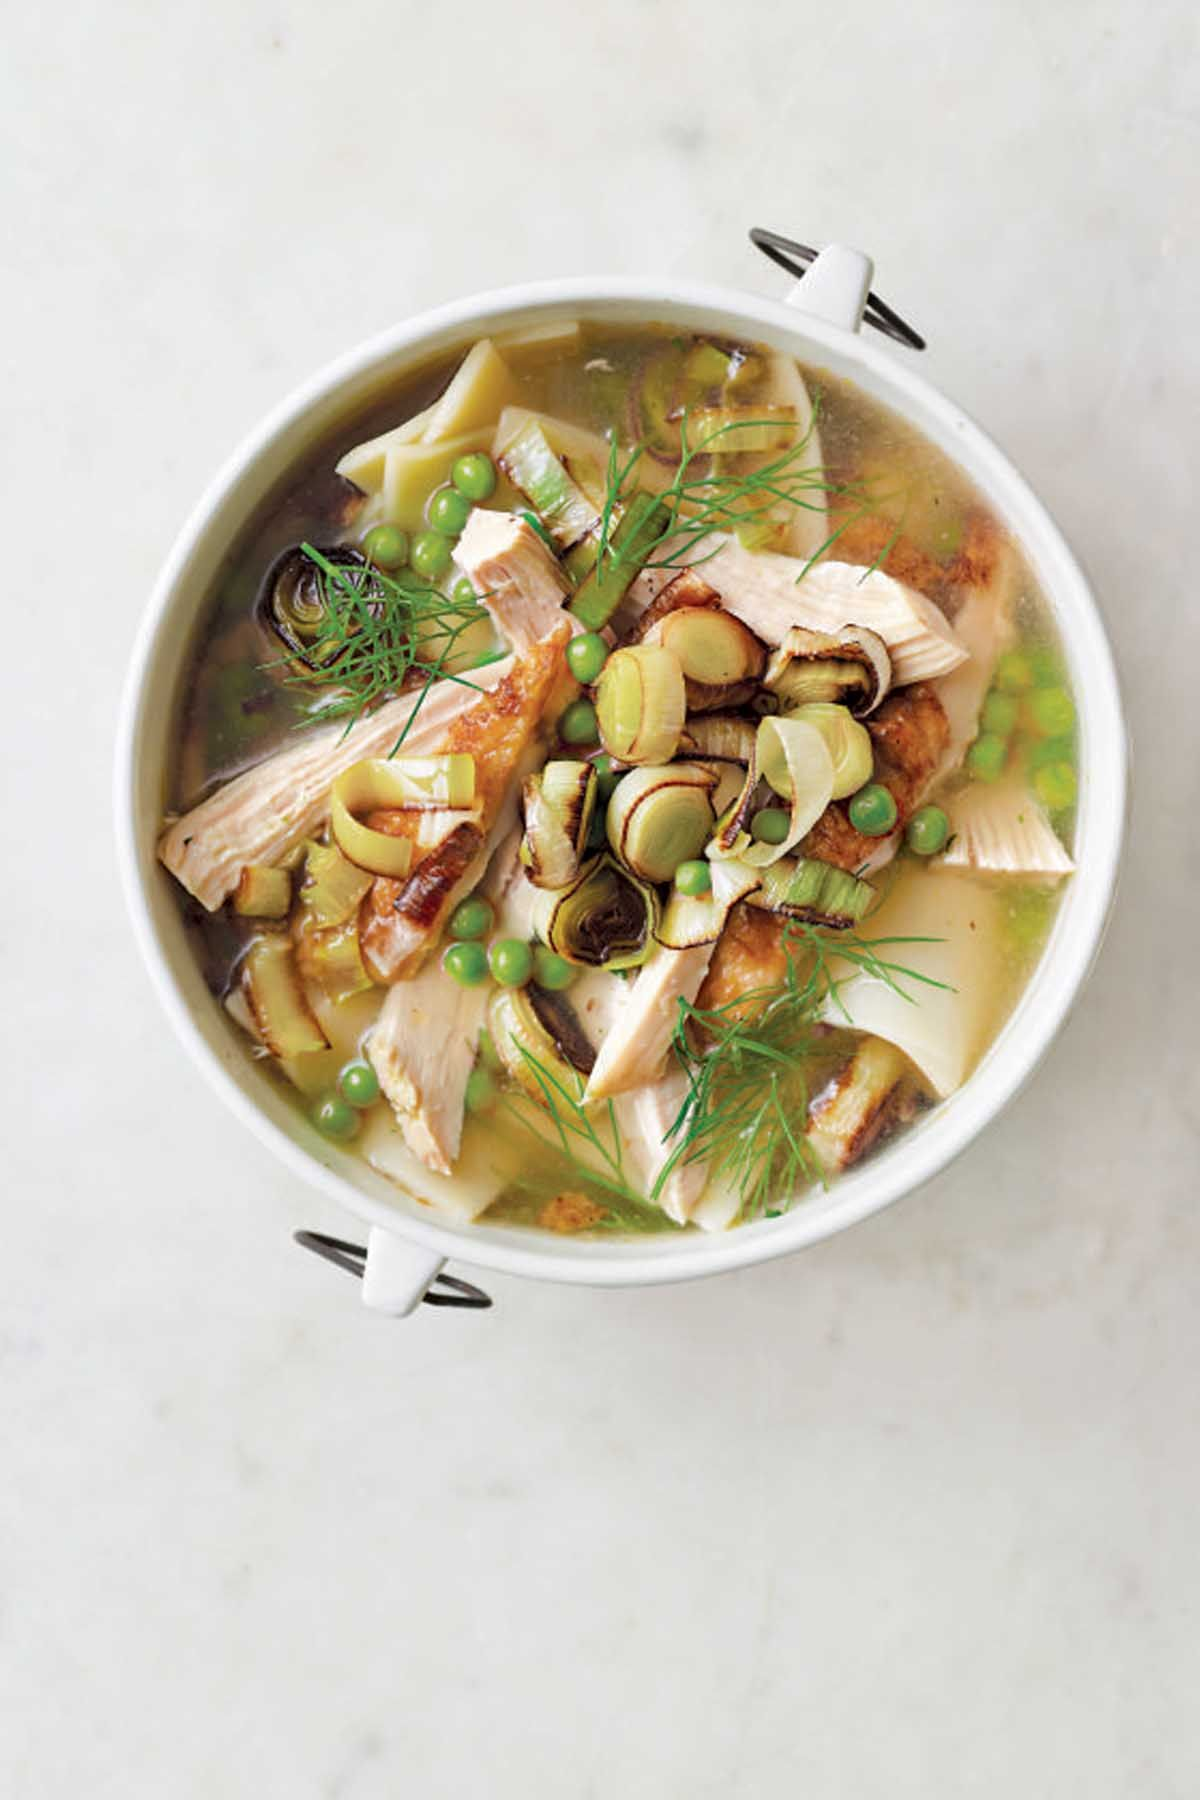 30 best chicken soup recipes how to make easy homemade chicken 30 best chicken soup recipes how to make easy homemade chicken noodle soups forumfinder Gallery